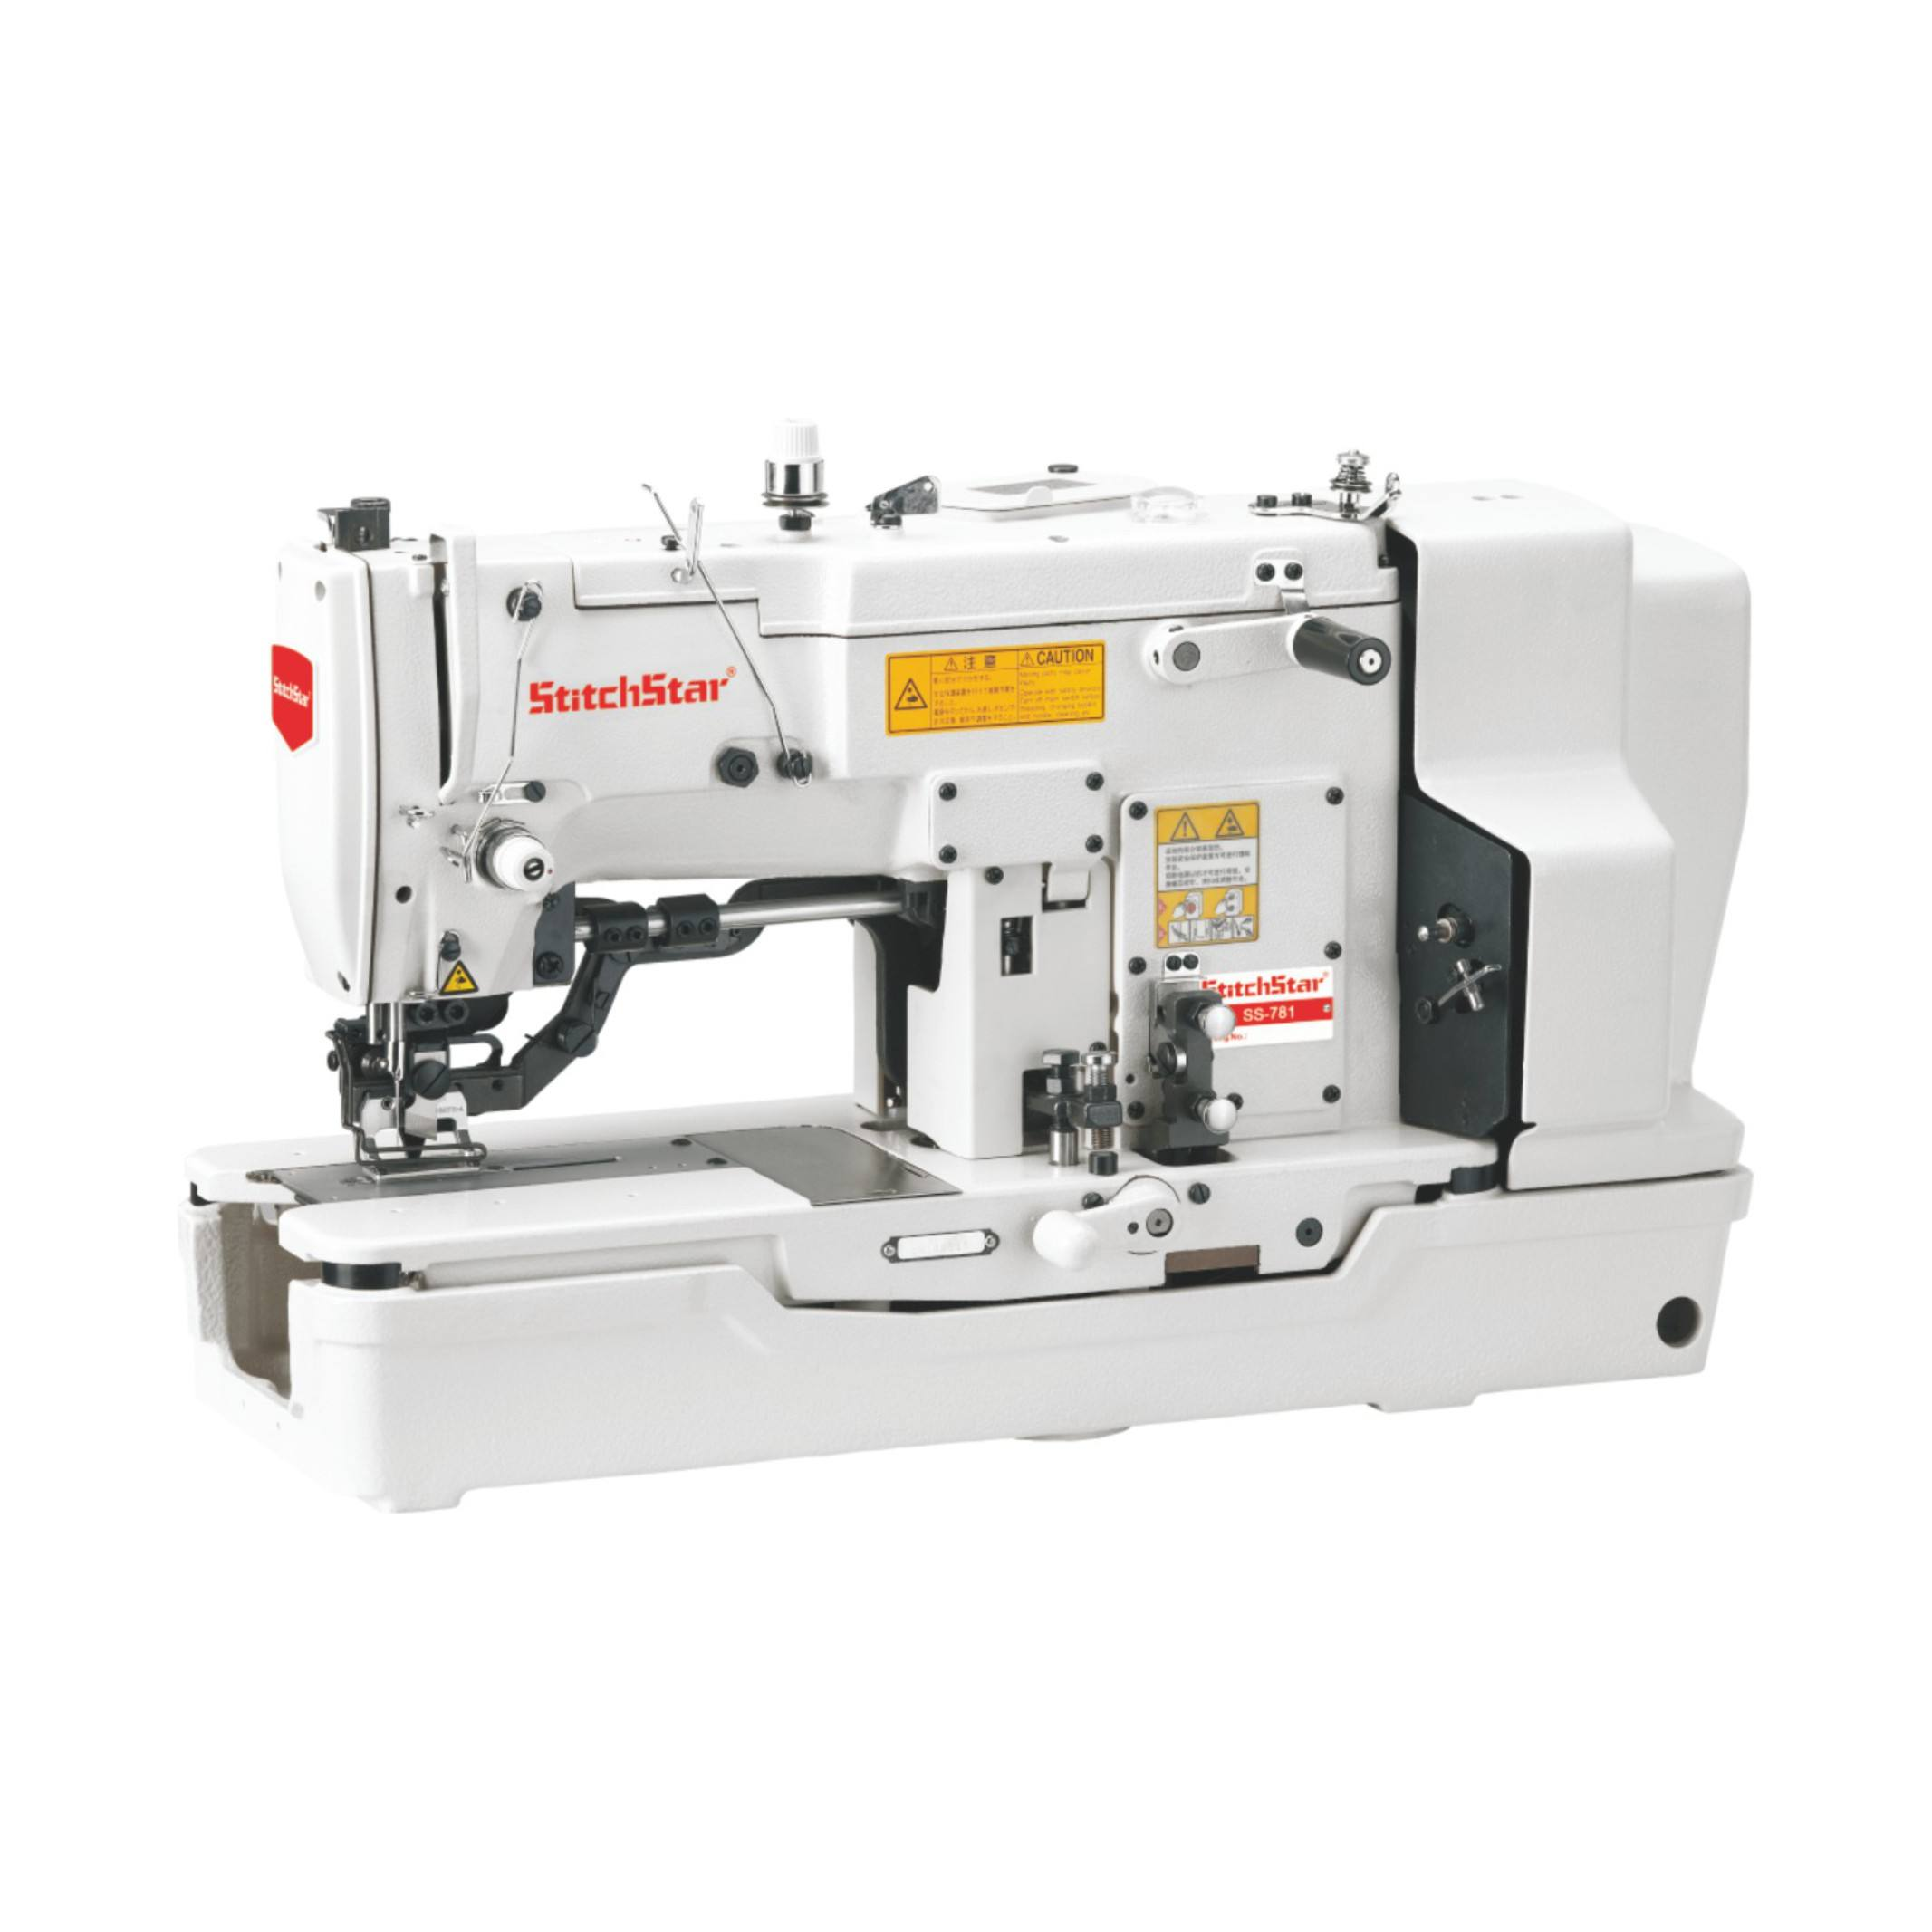 SS-781 Ju ki Style Pulley Type High Speed Buttonhole Sewing Industrial Buttonhole Machines